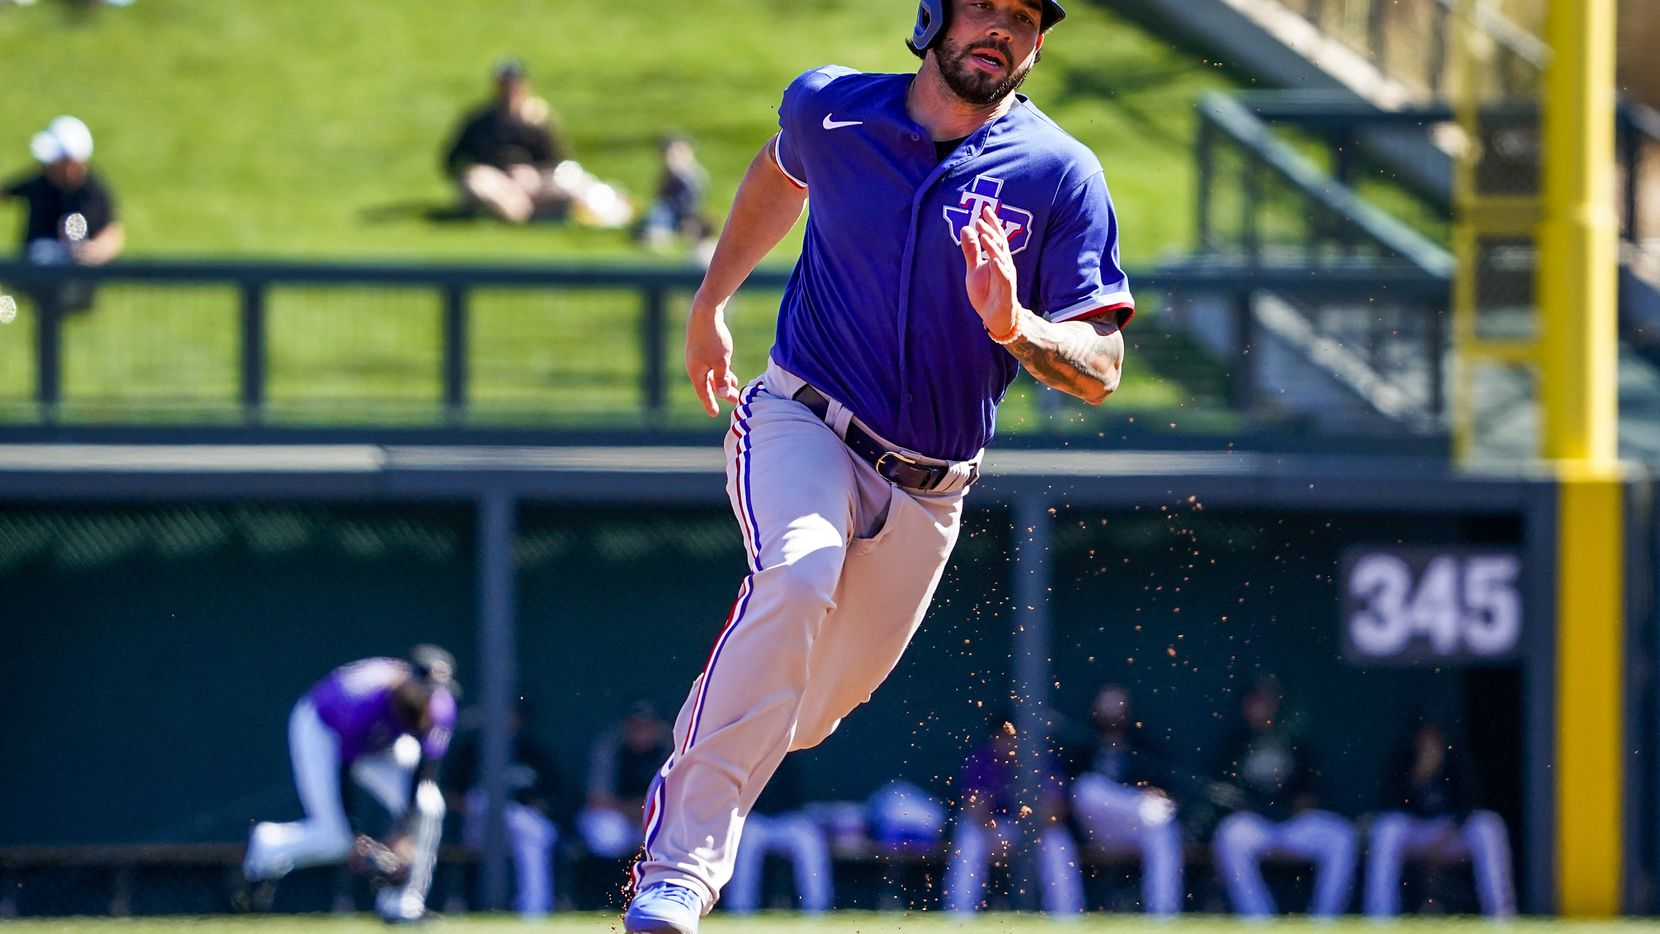 Texas Rangers catcher Blake Swihart rounds second base and heads for third to advance on a single by outfielder Danny Santana during the third inning of a spring training game against the Colorado Rockies at Salt River Fields at Talking Stick on Wednesday, Feb. 26, 2020, in Scottsdale, Ariz.